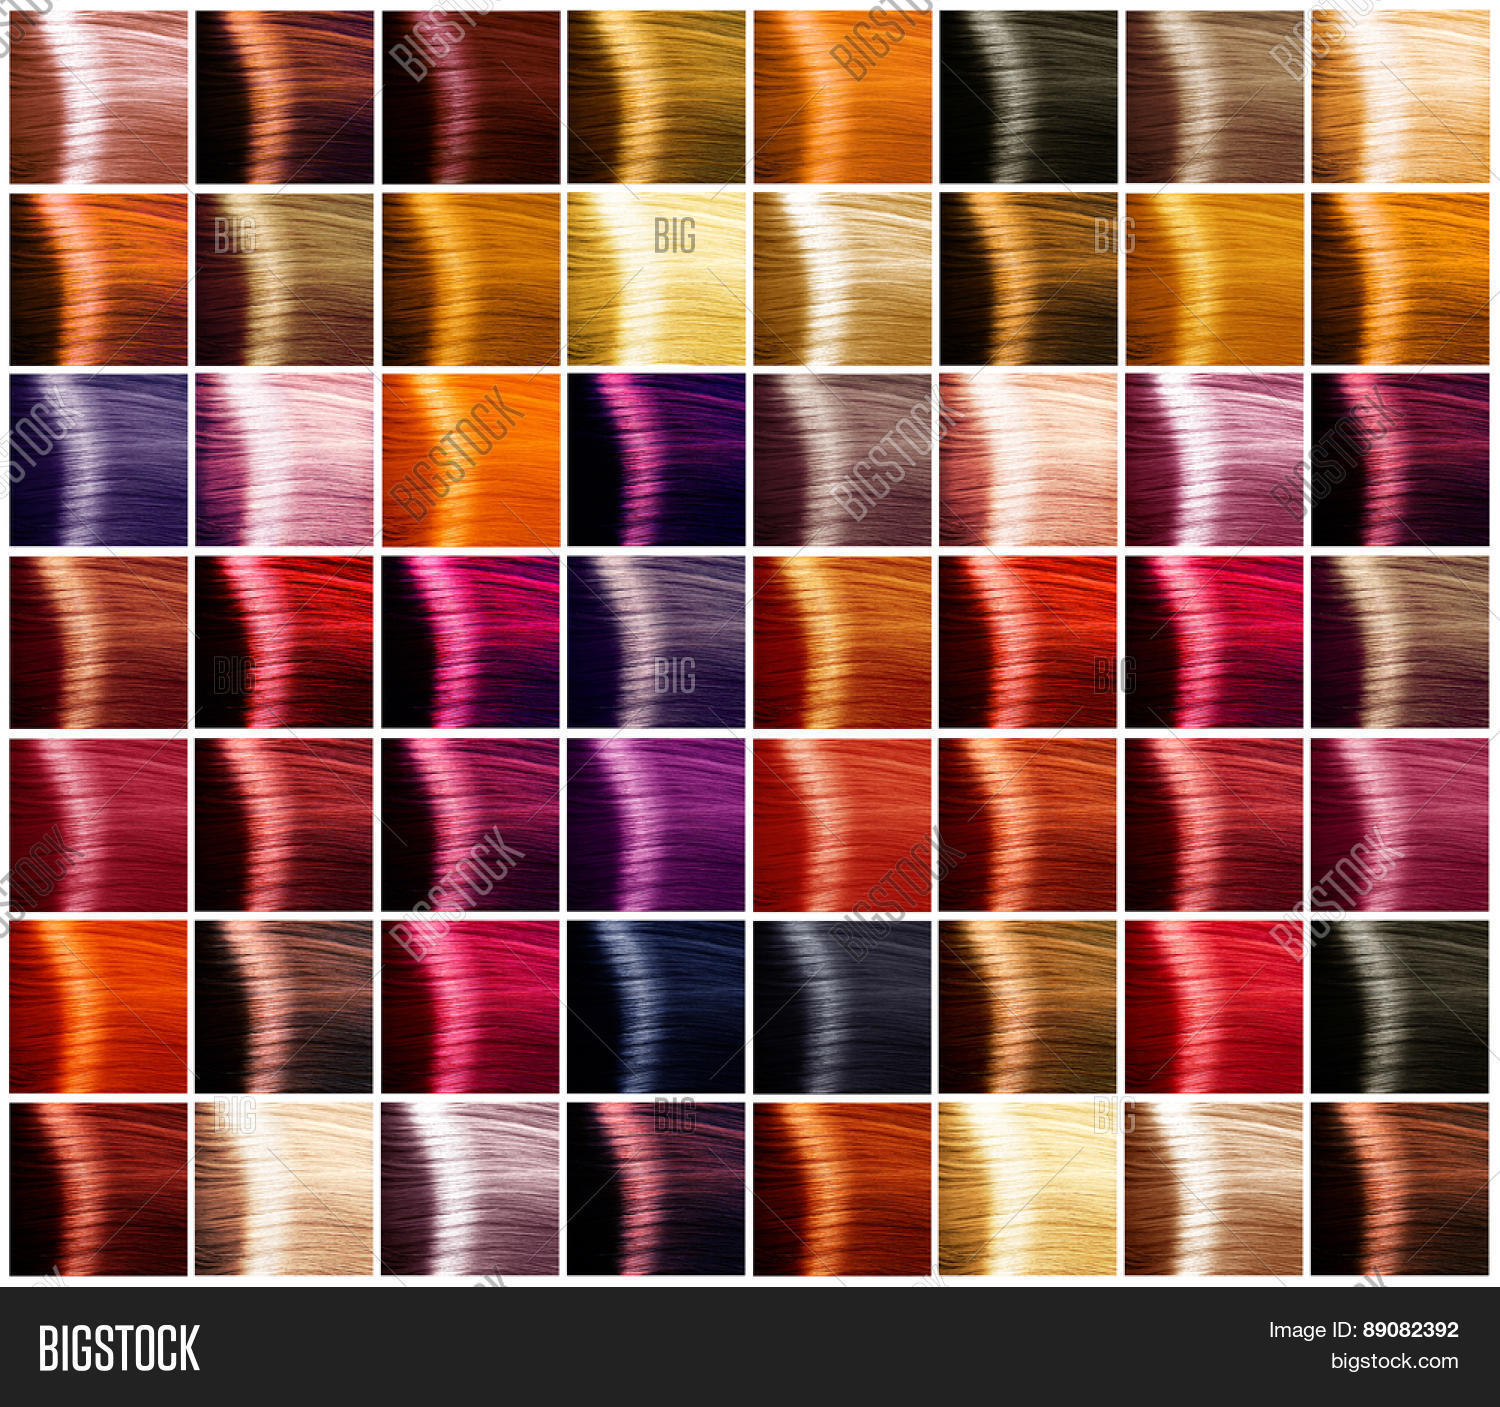 Hair Colors Palette. Image & Photo (Free Trial) | Bigstock